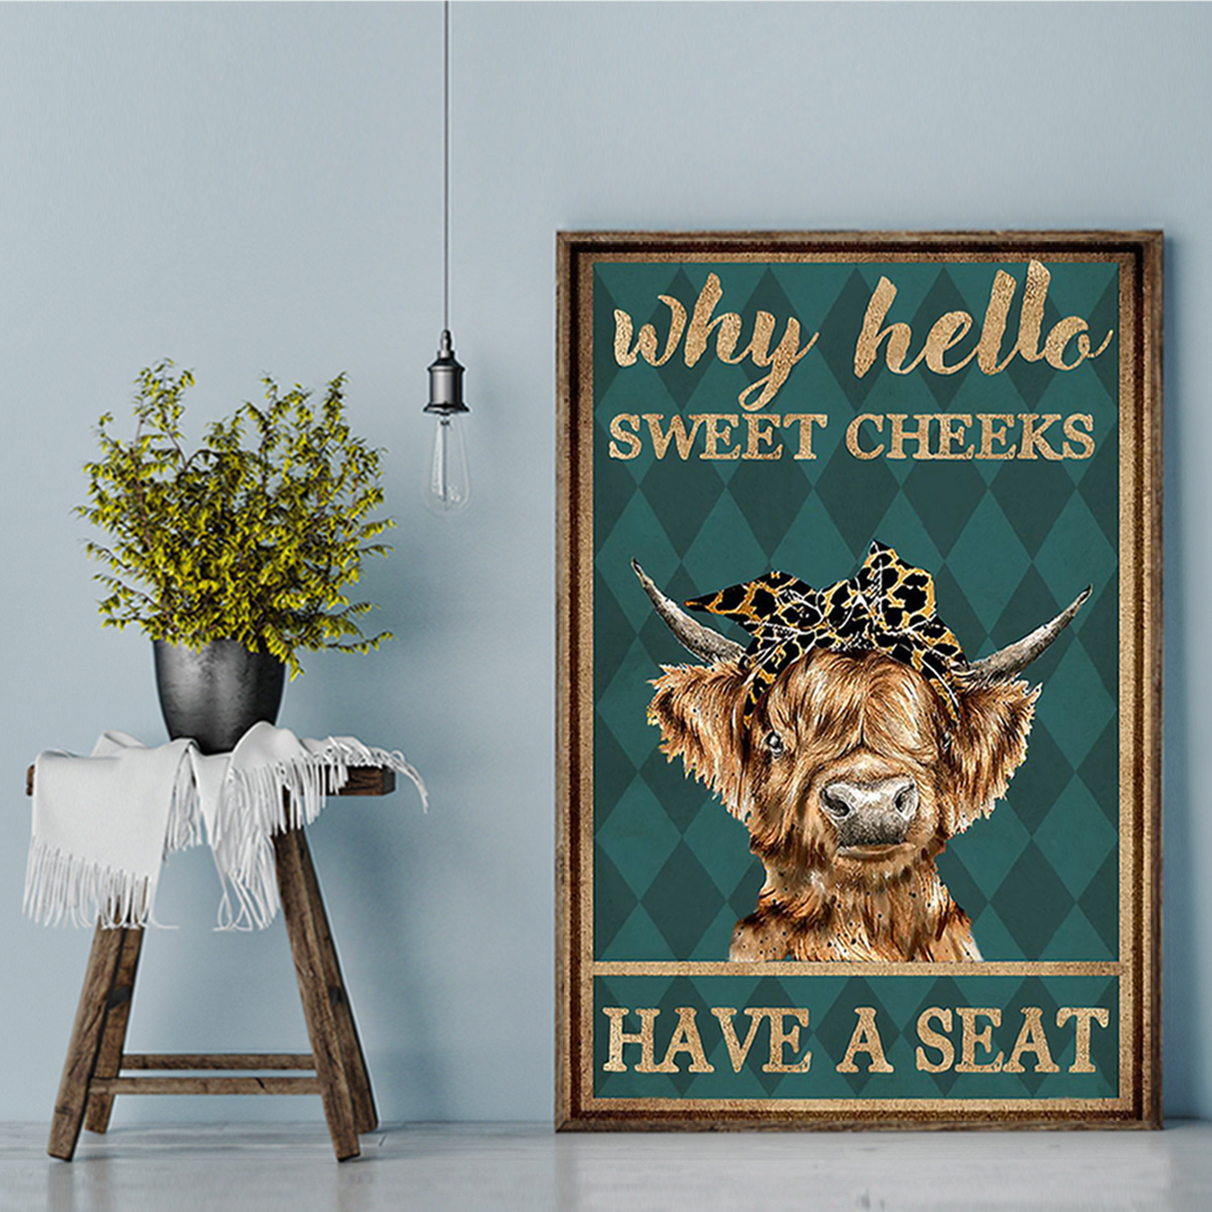 Cow highland cattle why hello sweet cheeks have a seat poster A1